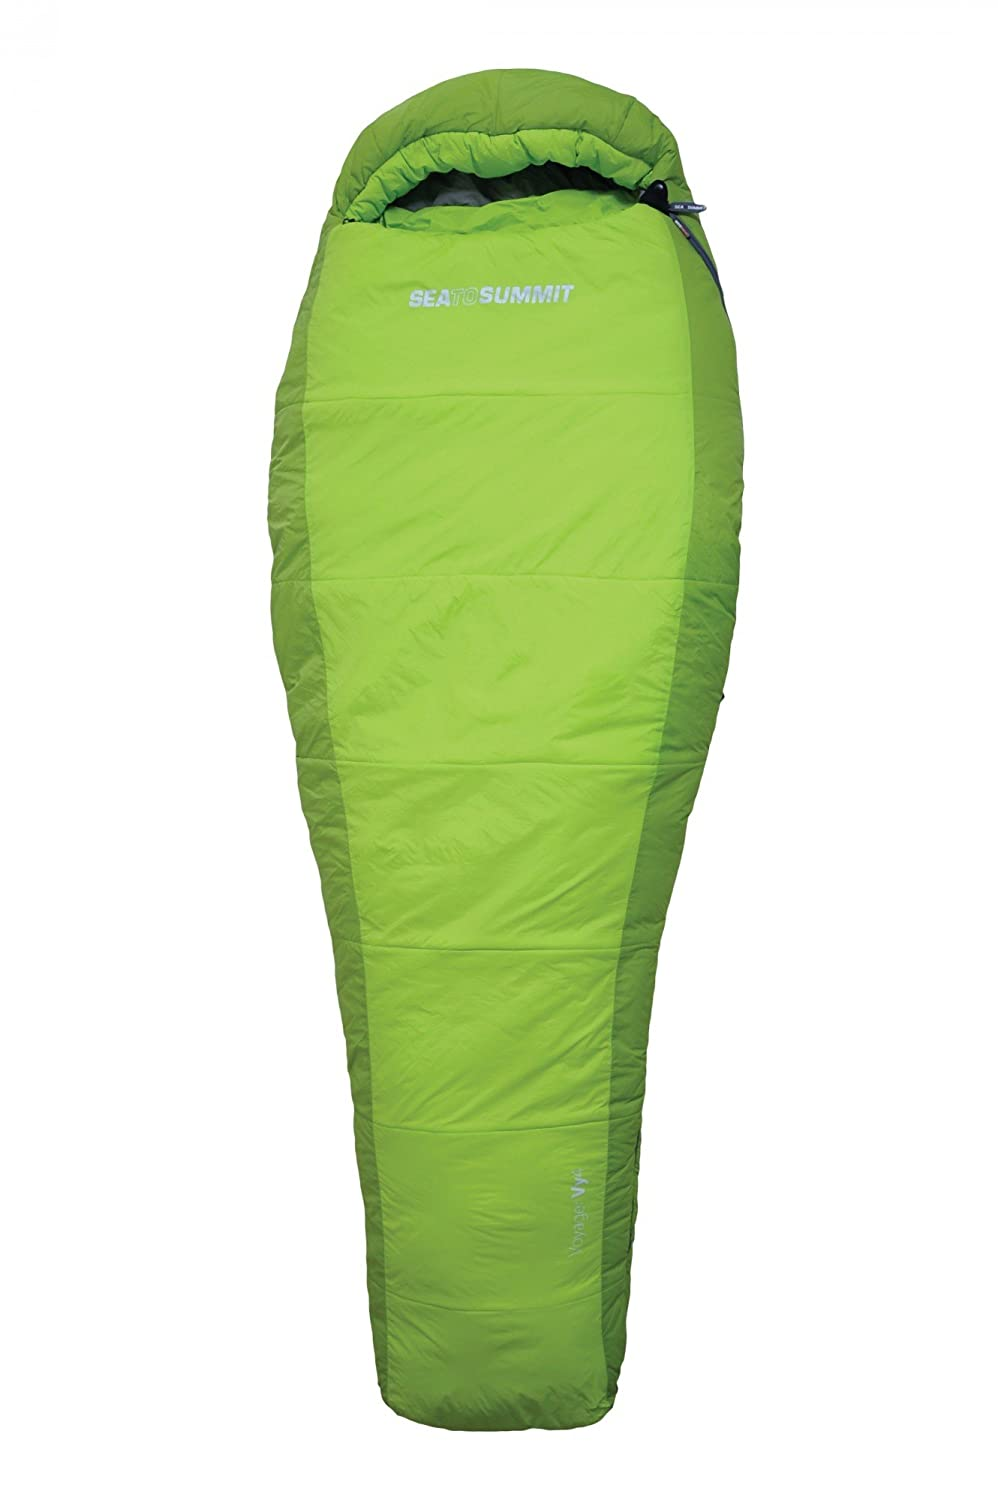 Sea to Summit Voyager Vy4 Sleeping Bag Regular lime Ausführung links 2016 Mumienschlafsack